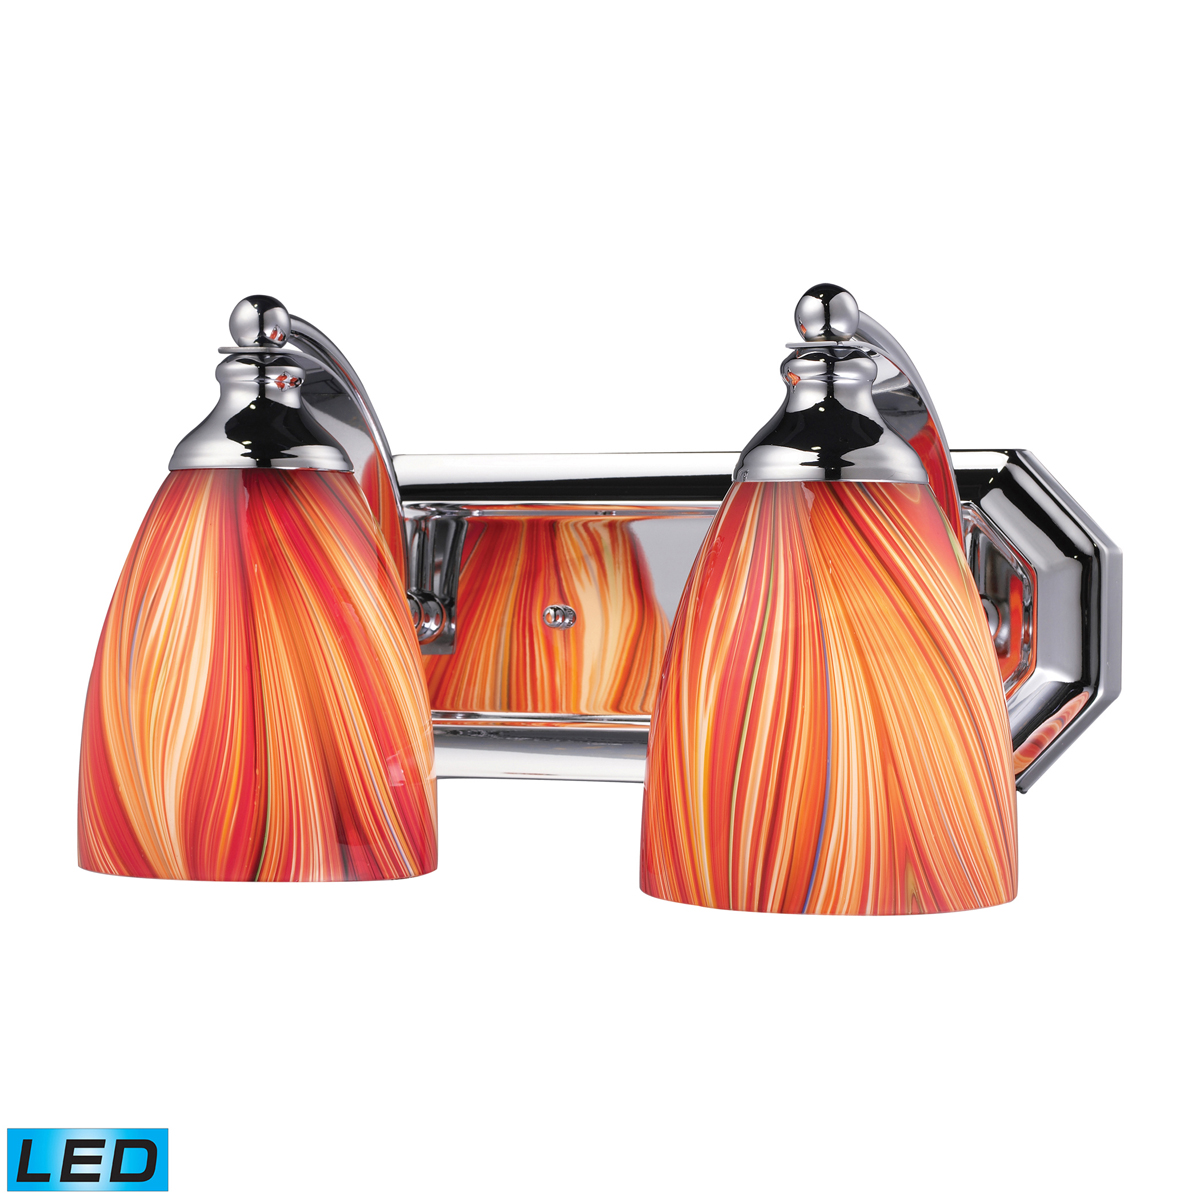 ELK Lighting (570-2C-M-LED) Vanity 2-Light LED Bathbar with Multi-colored Swirled Glass